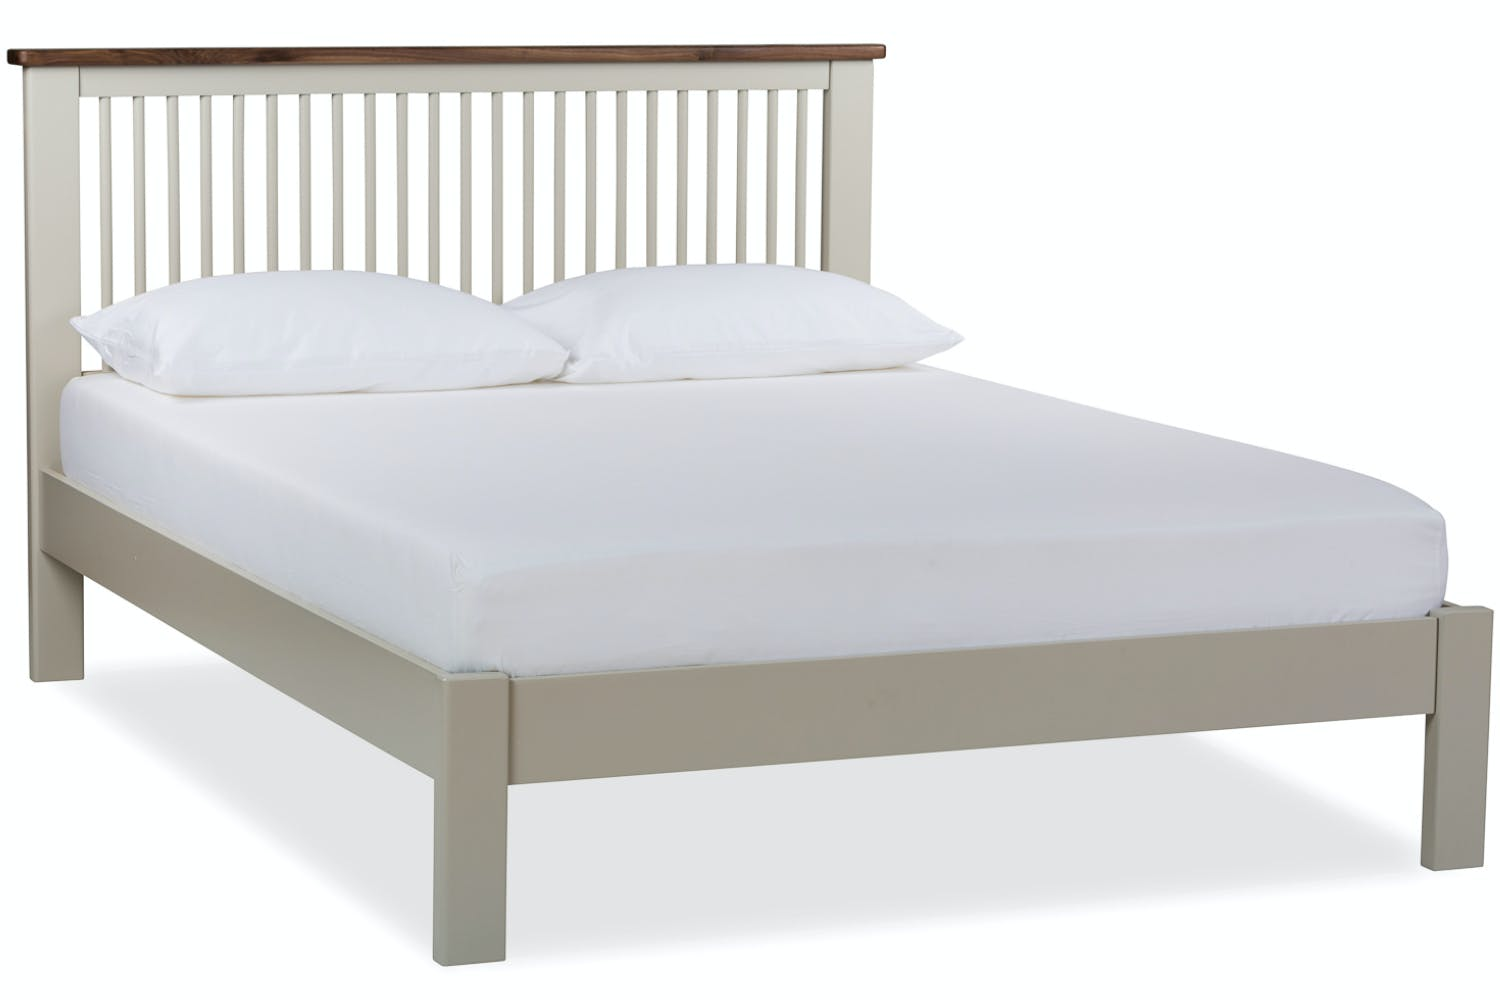 Kent Doube Round Slat Bed Frame 4ft6 Harvey Norman Ireland